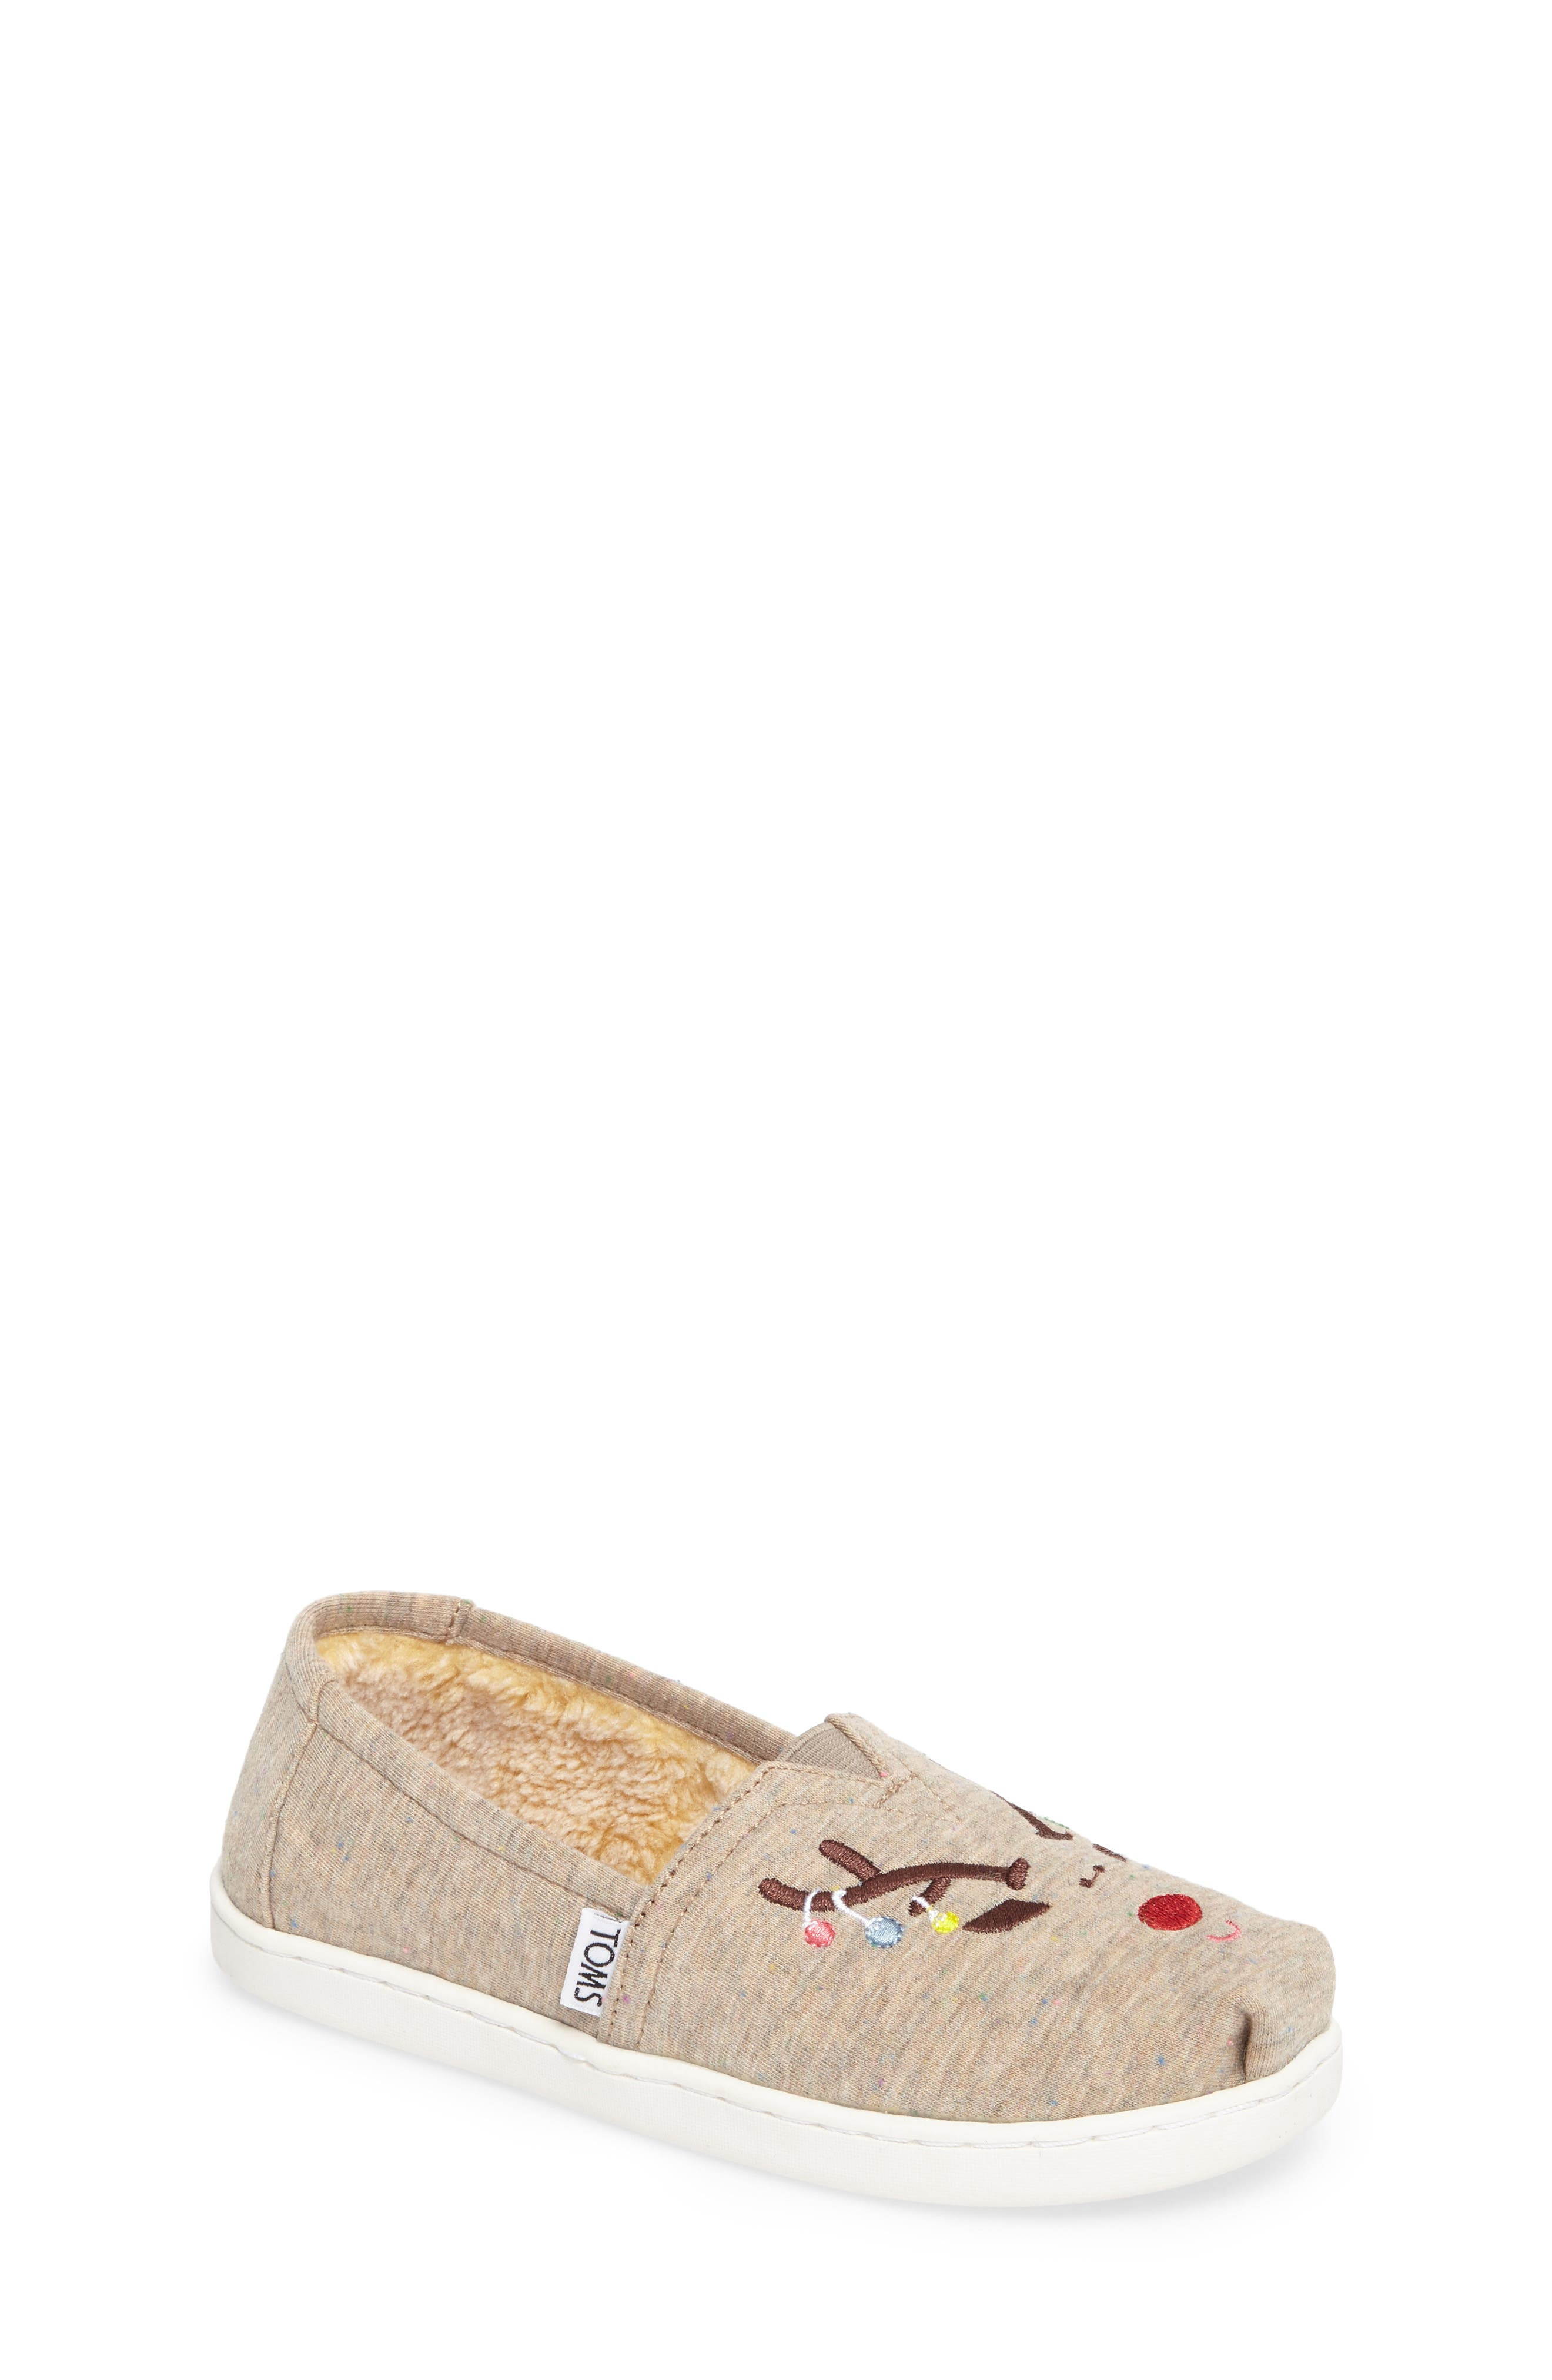 TOMS Classic Reindeer Embroidered Slip-On (Toddler, Little Kid & Big Kid)